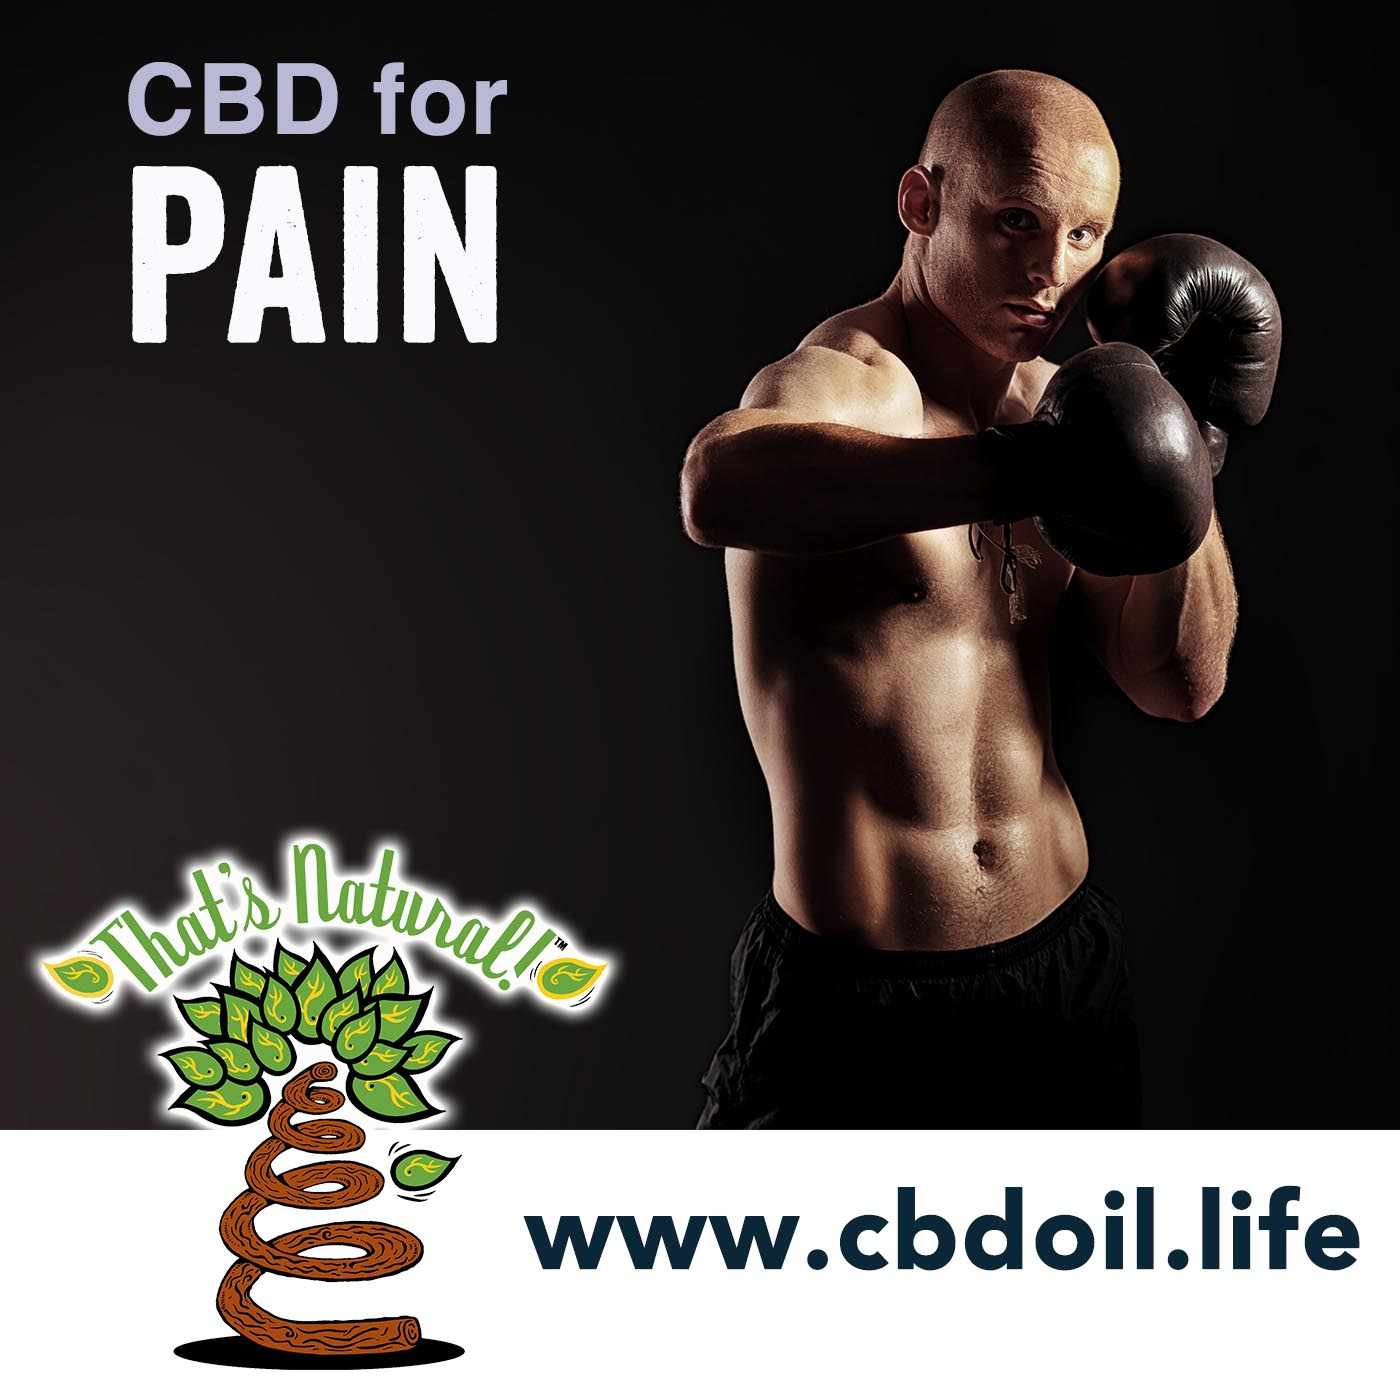 MMA and UFC Fighters - That's Natural Full Spectrum CBD Oil Products at www.cbdoil.life, V2